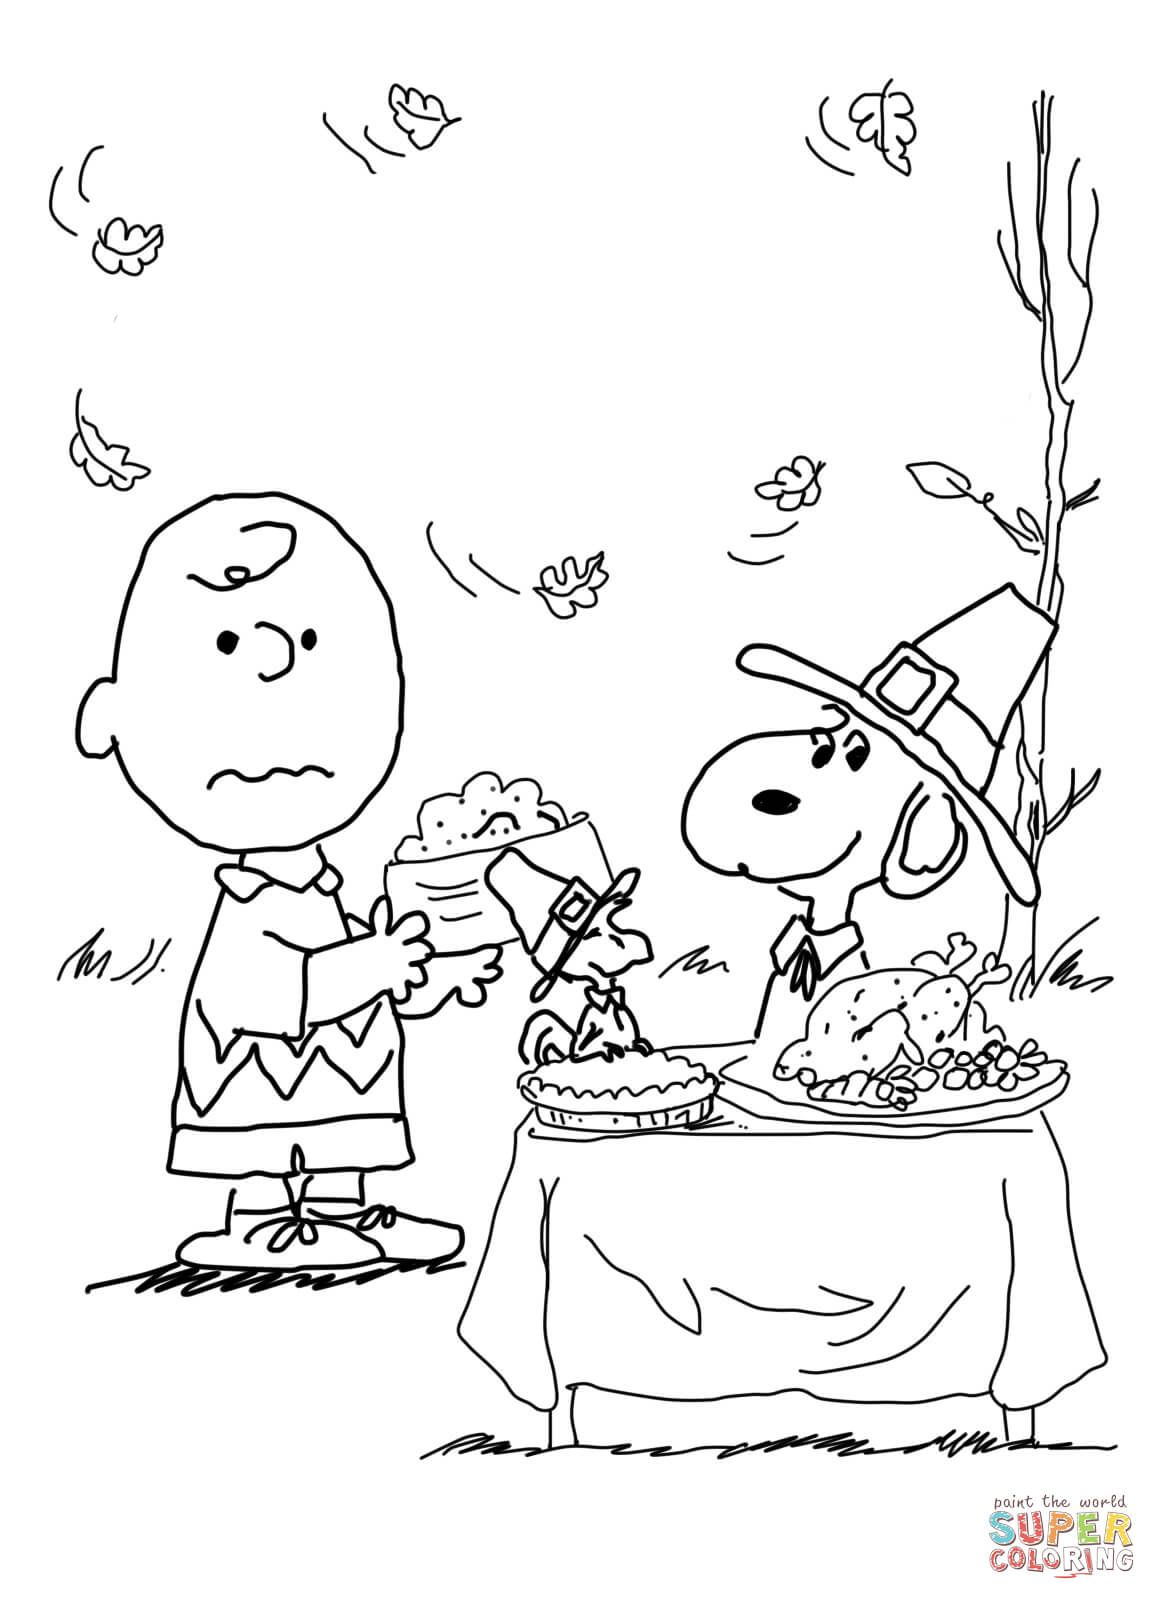 Charlie Brown Thanksgiving Coloring Page From Peanuts